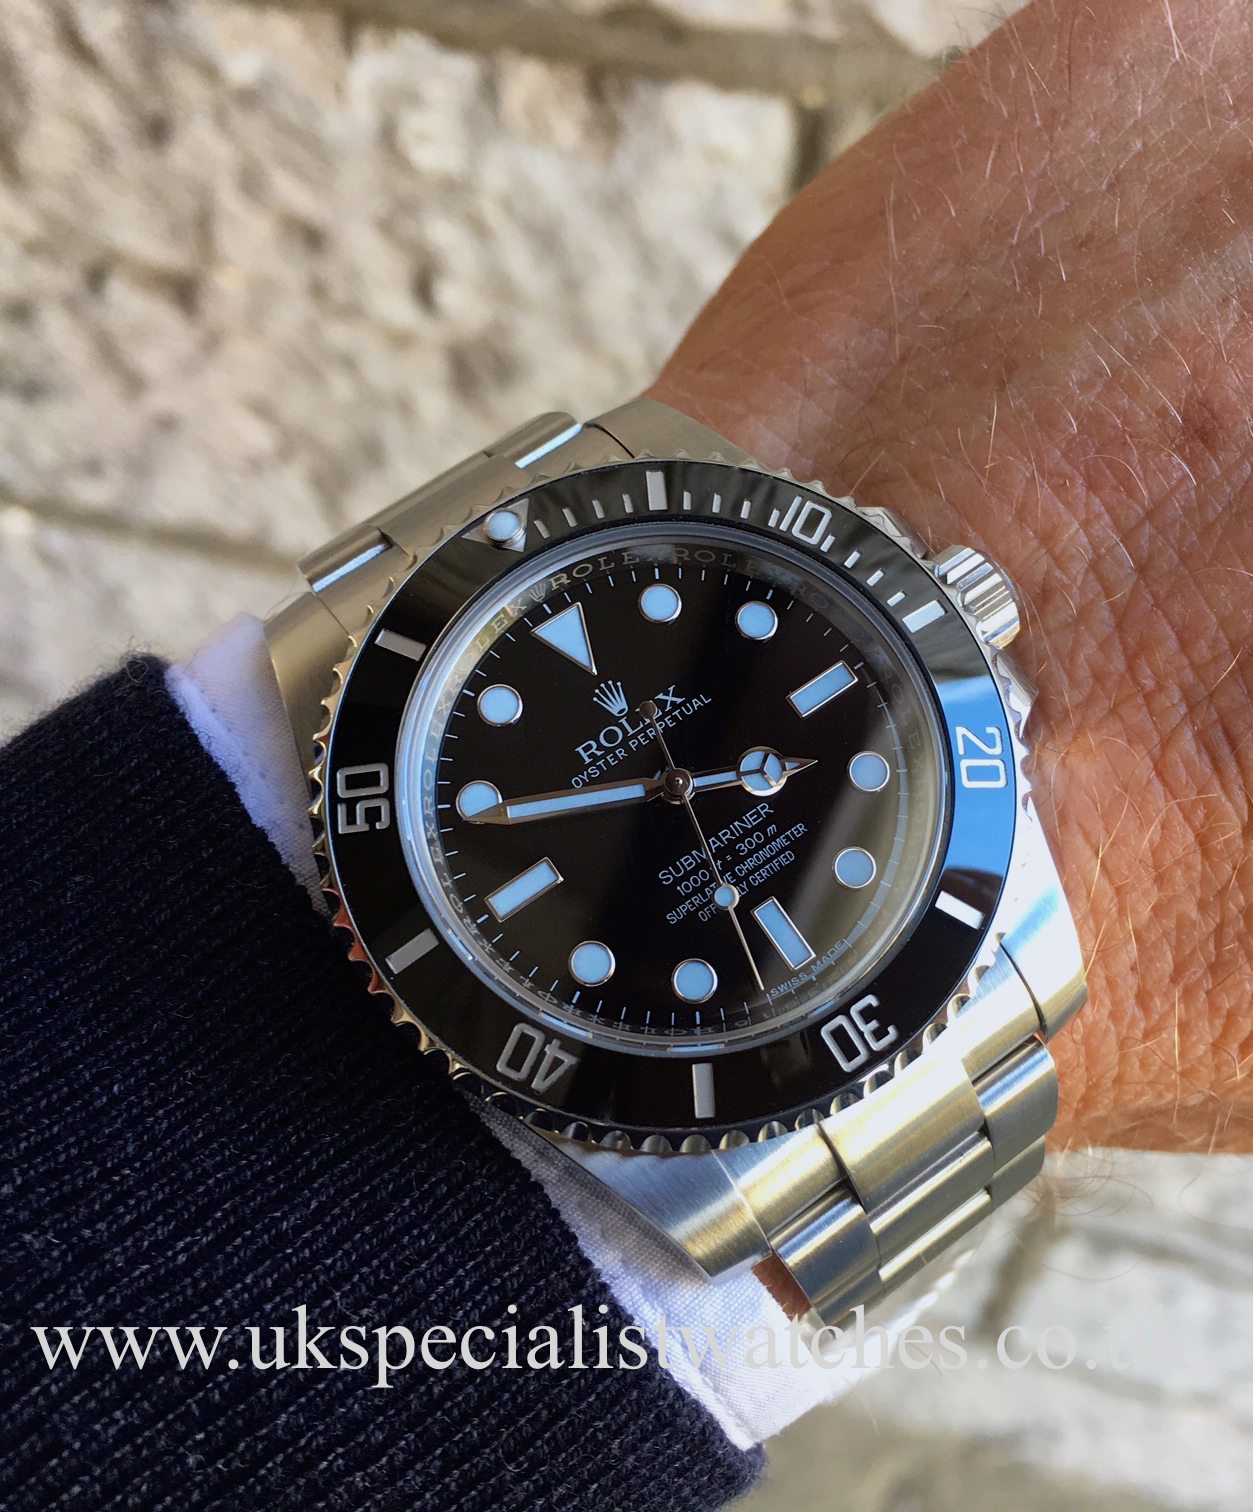 rolex submariner non date new model ceramic 114060 uk specialist watches. Black Bedroom Furniture Sets. Home Design Ideas